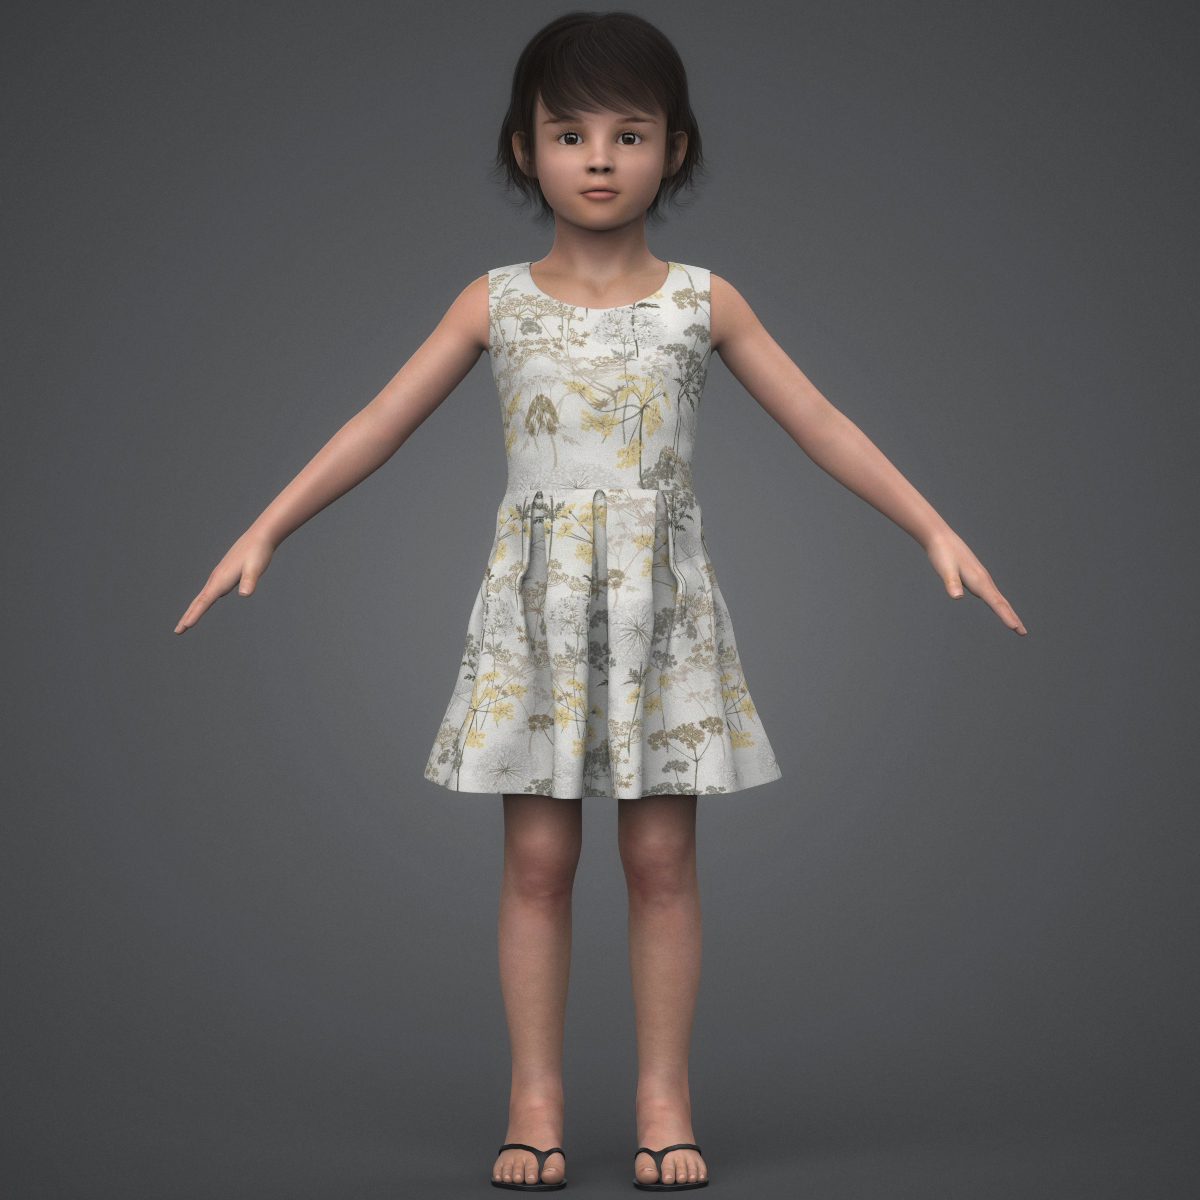 beautiful child girl 3d model max fbx c4d ma mb texture obj 252395